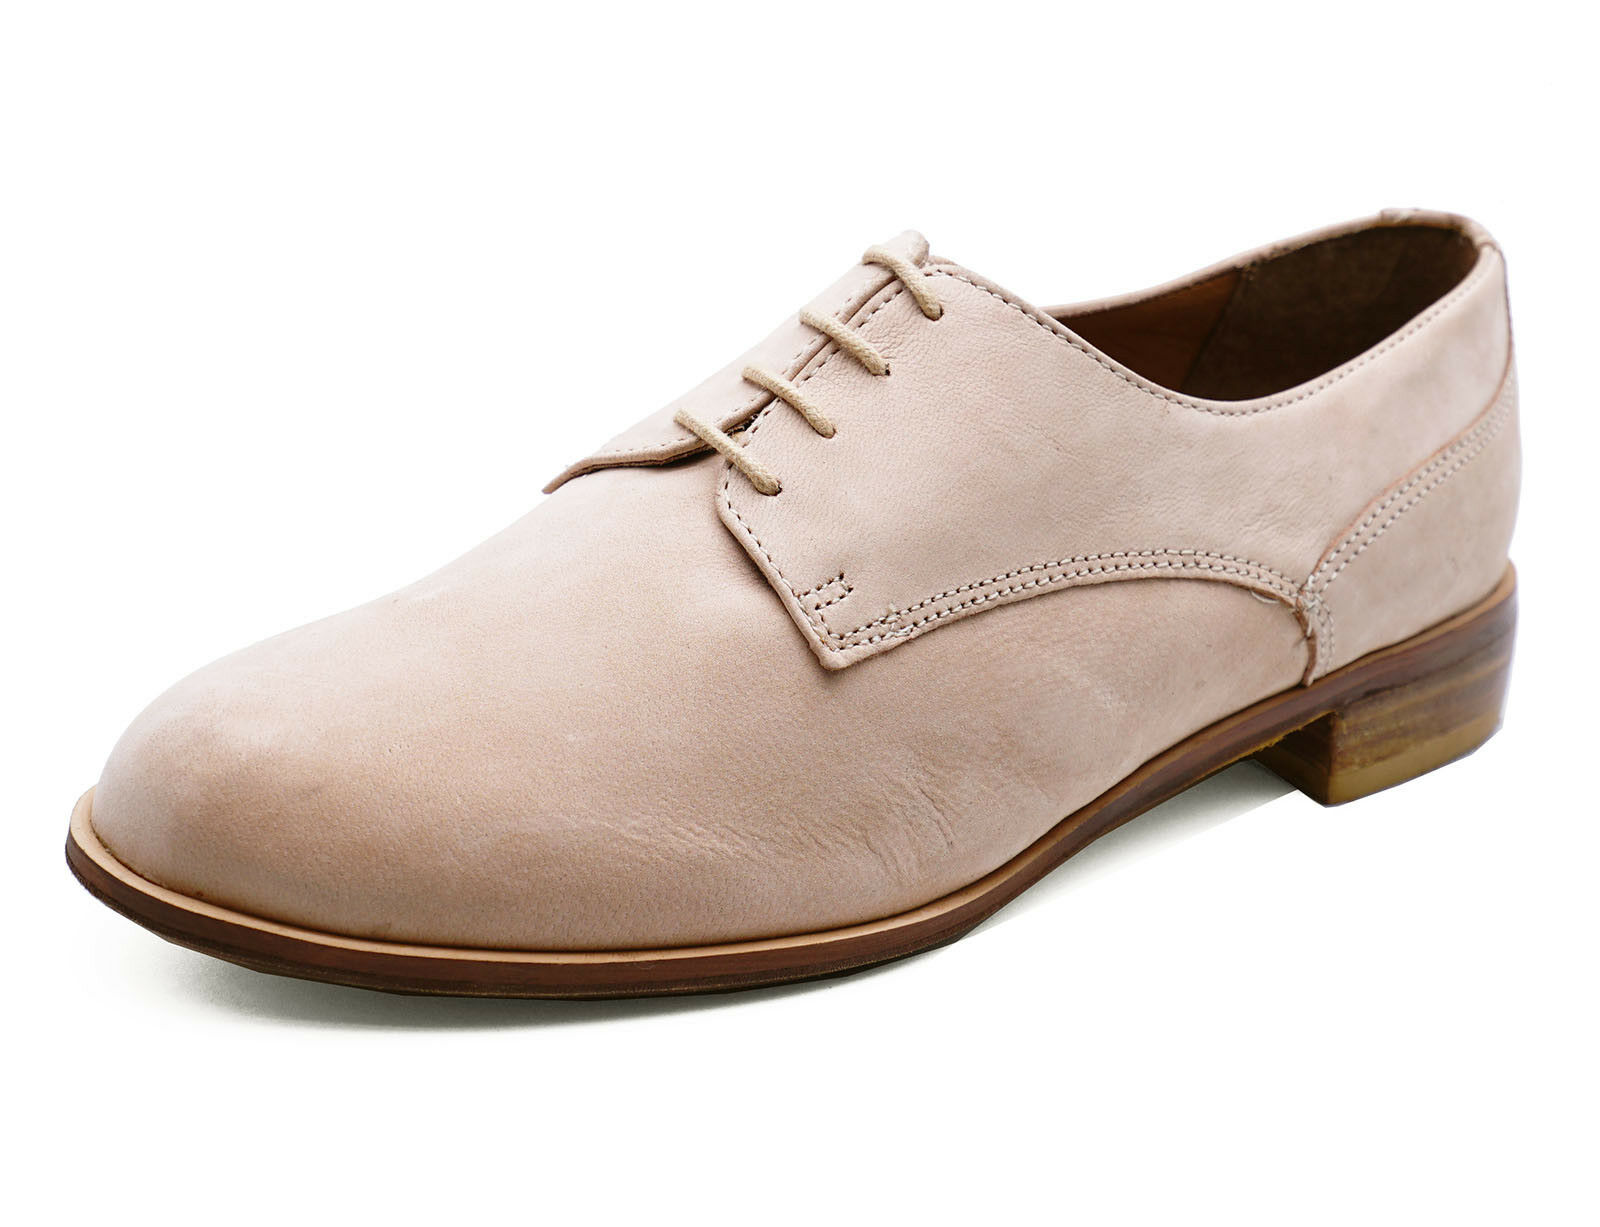 LADIES REAL LEATHER NUDE FLAT LACE-UP